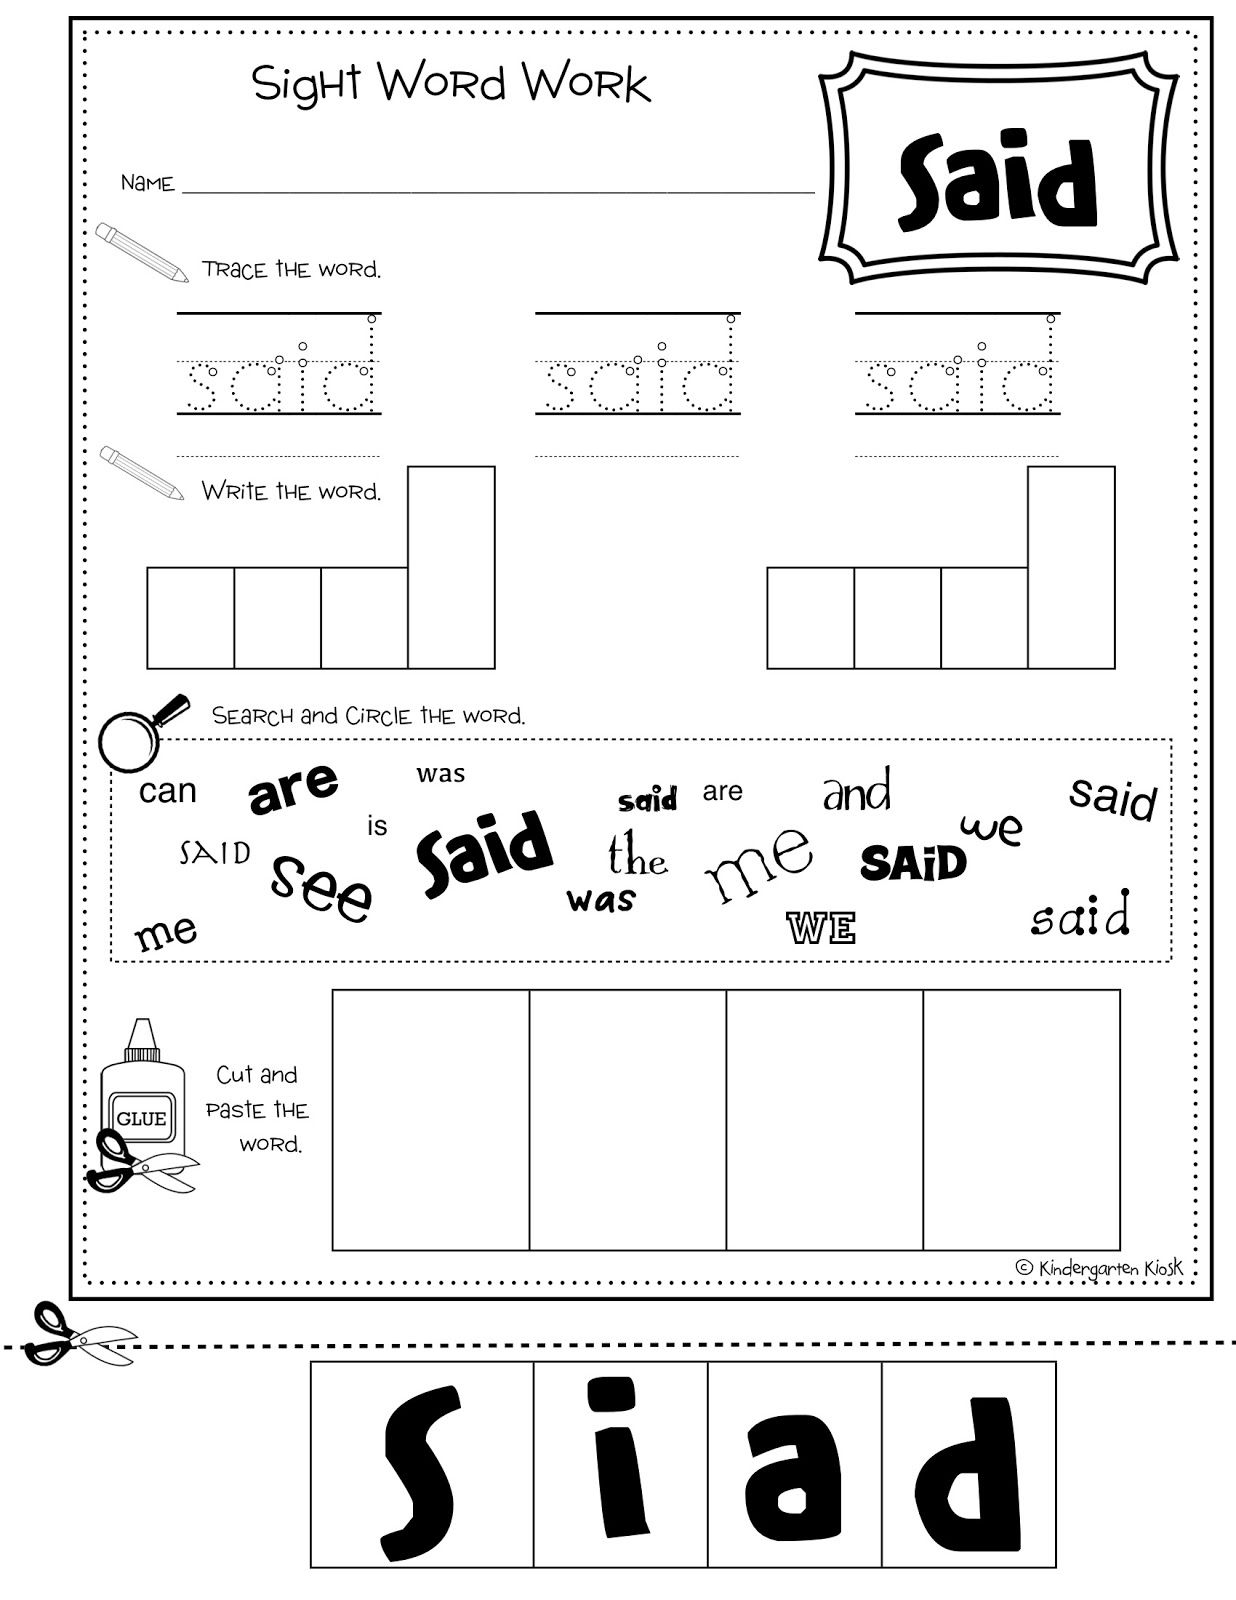 Kindergarten Kiosk Multi Task Sight Word Workbook